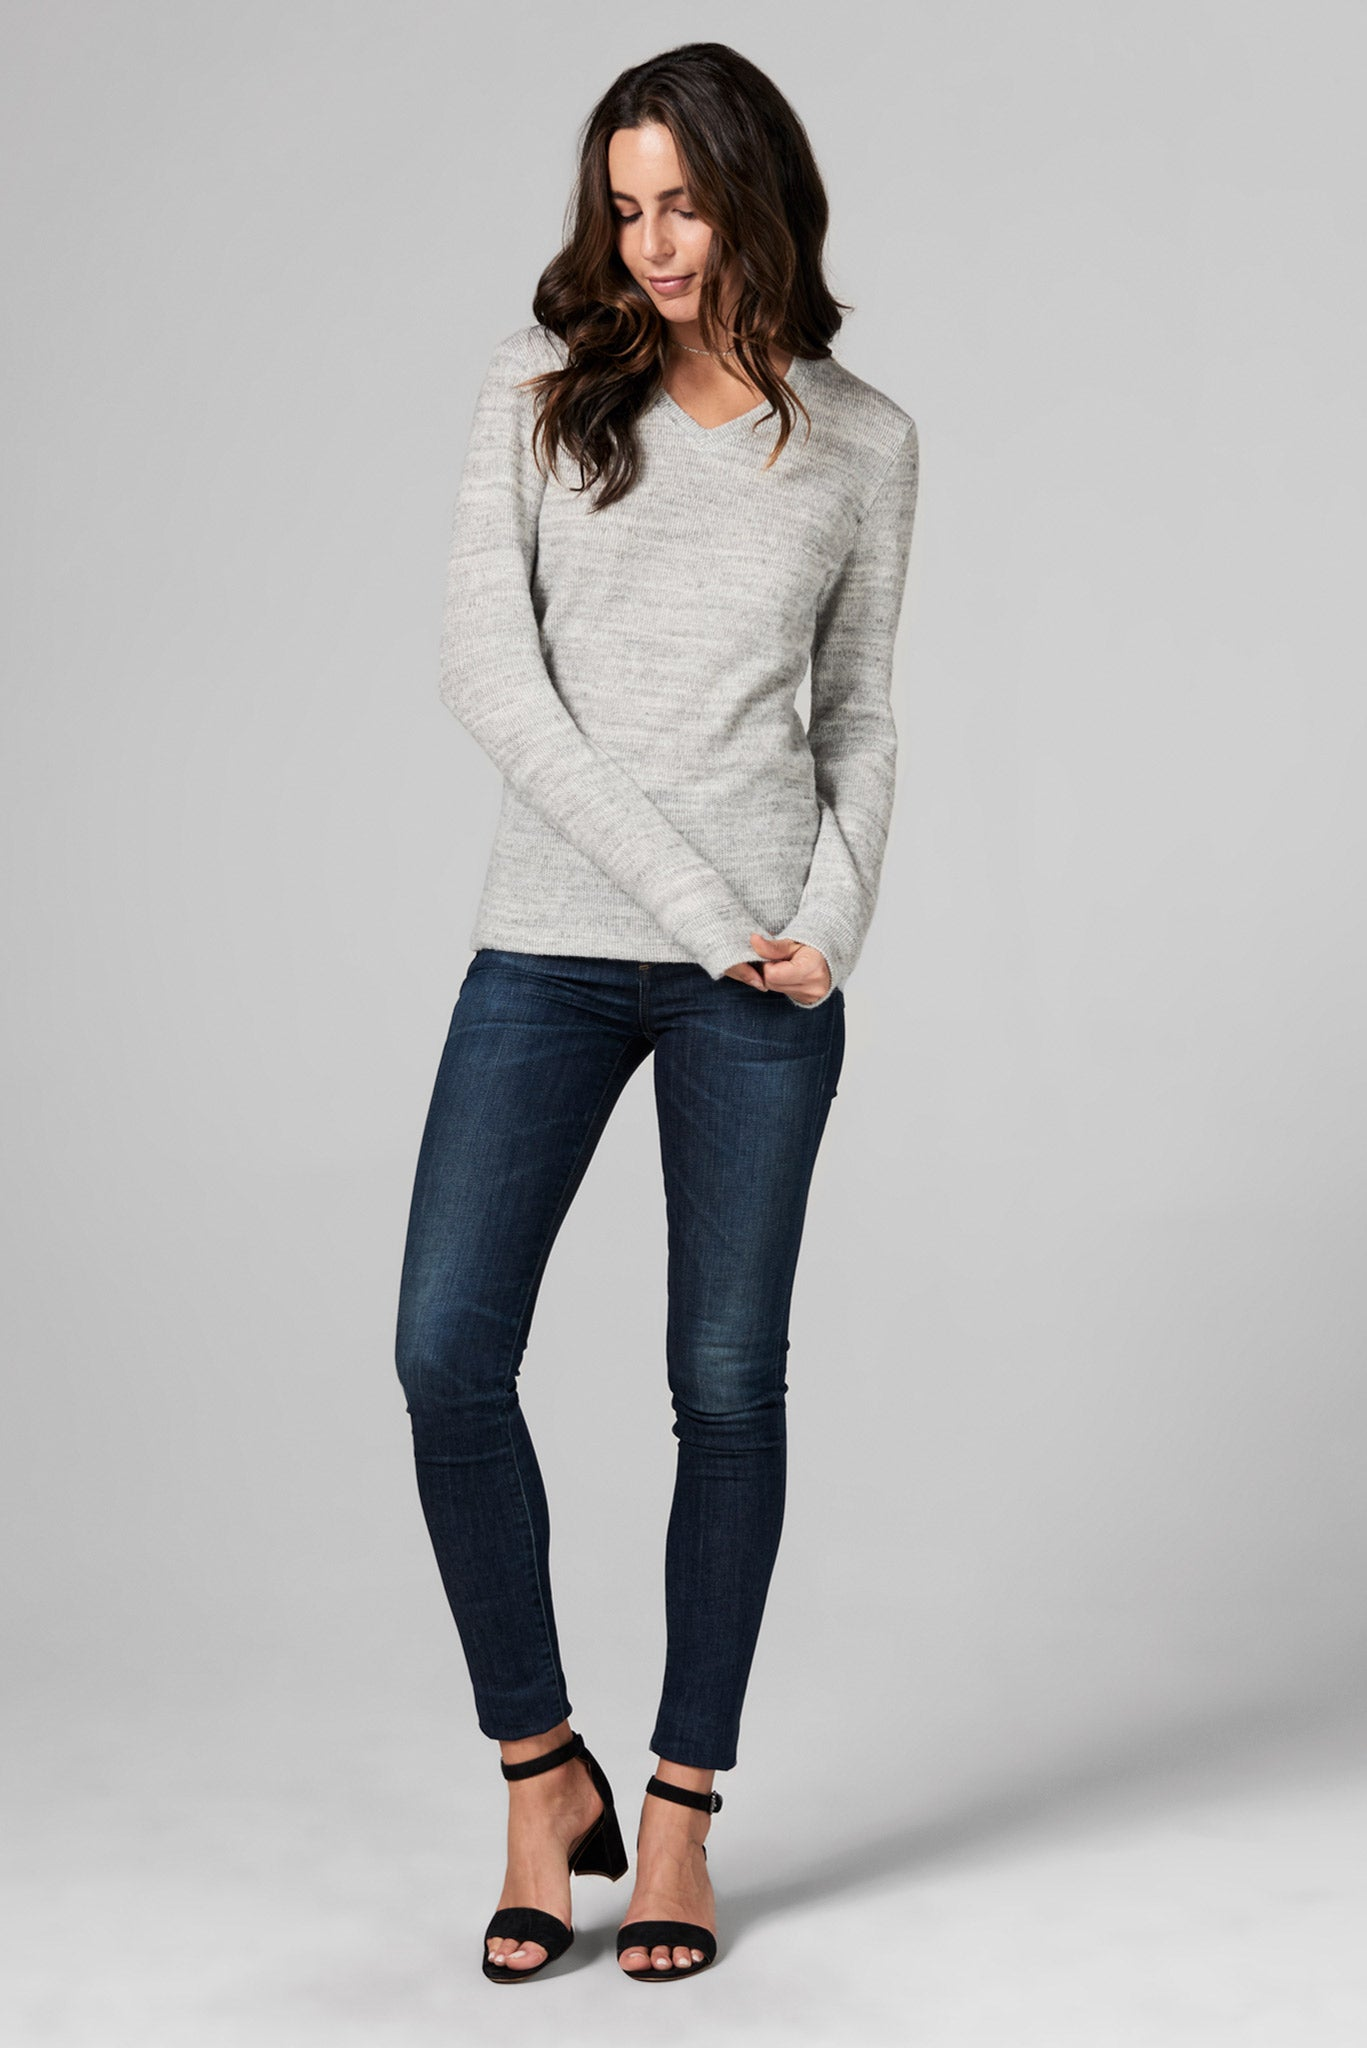 WOMEN'S MELANGE KNIT V-NECK PULLOVER SWEATSHIRT - HEATHER